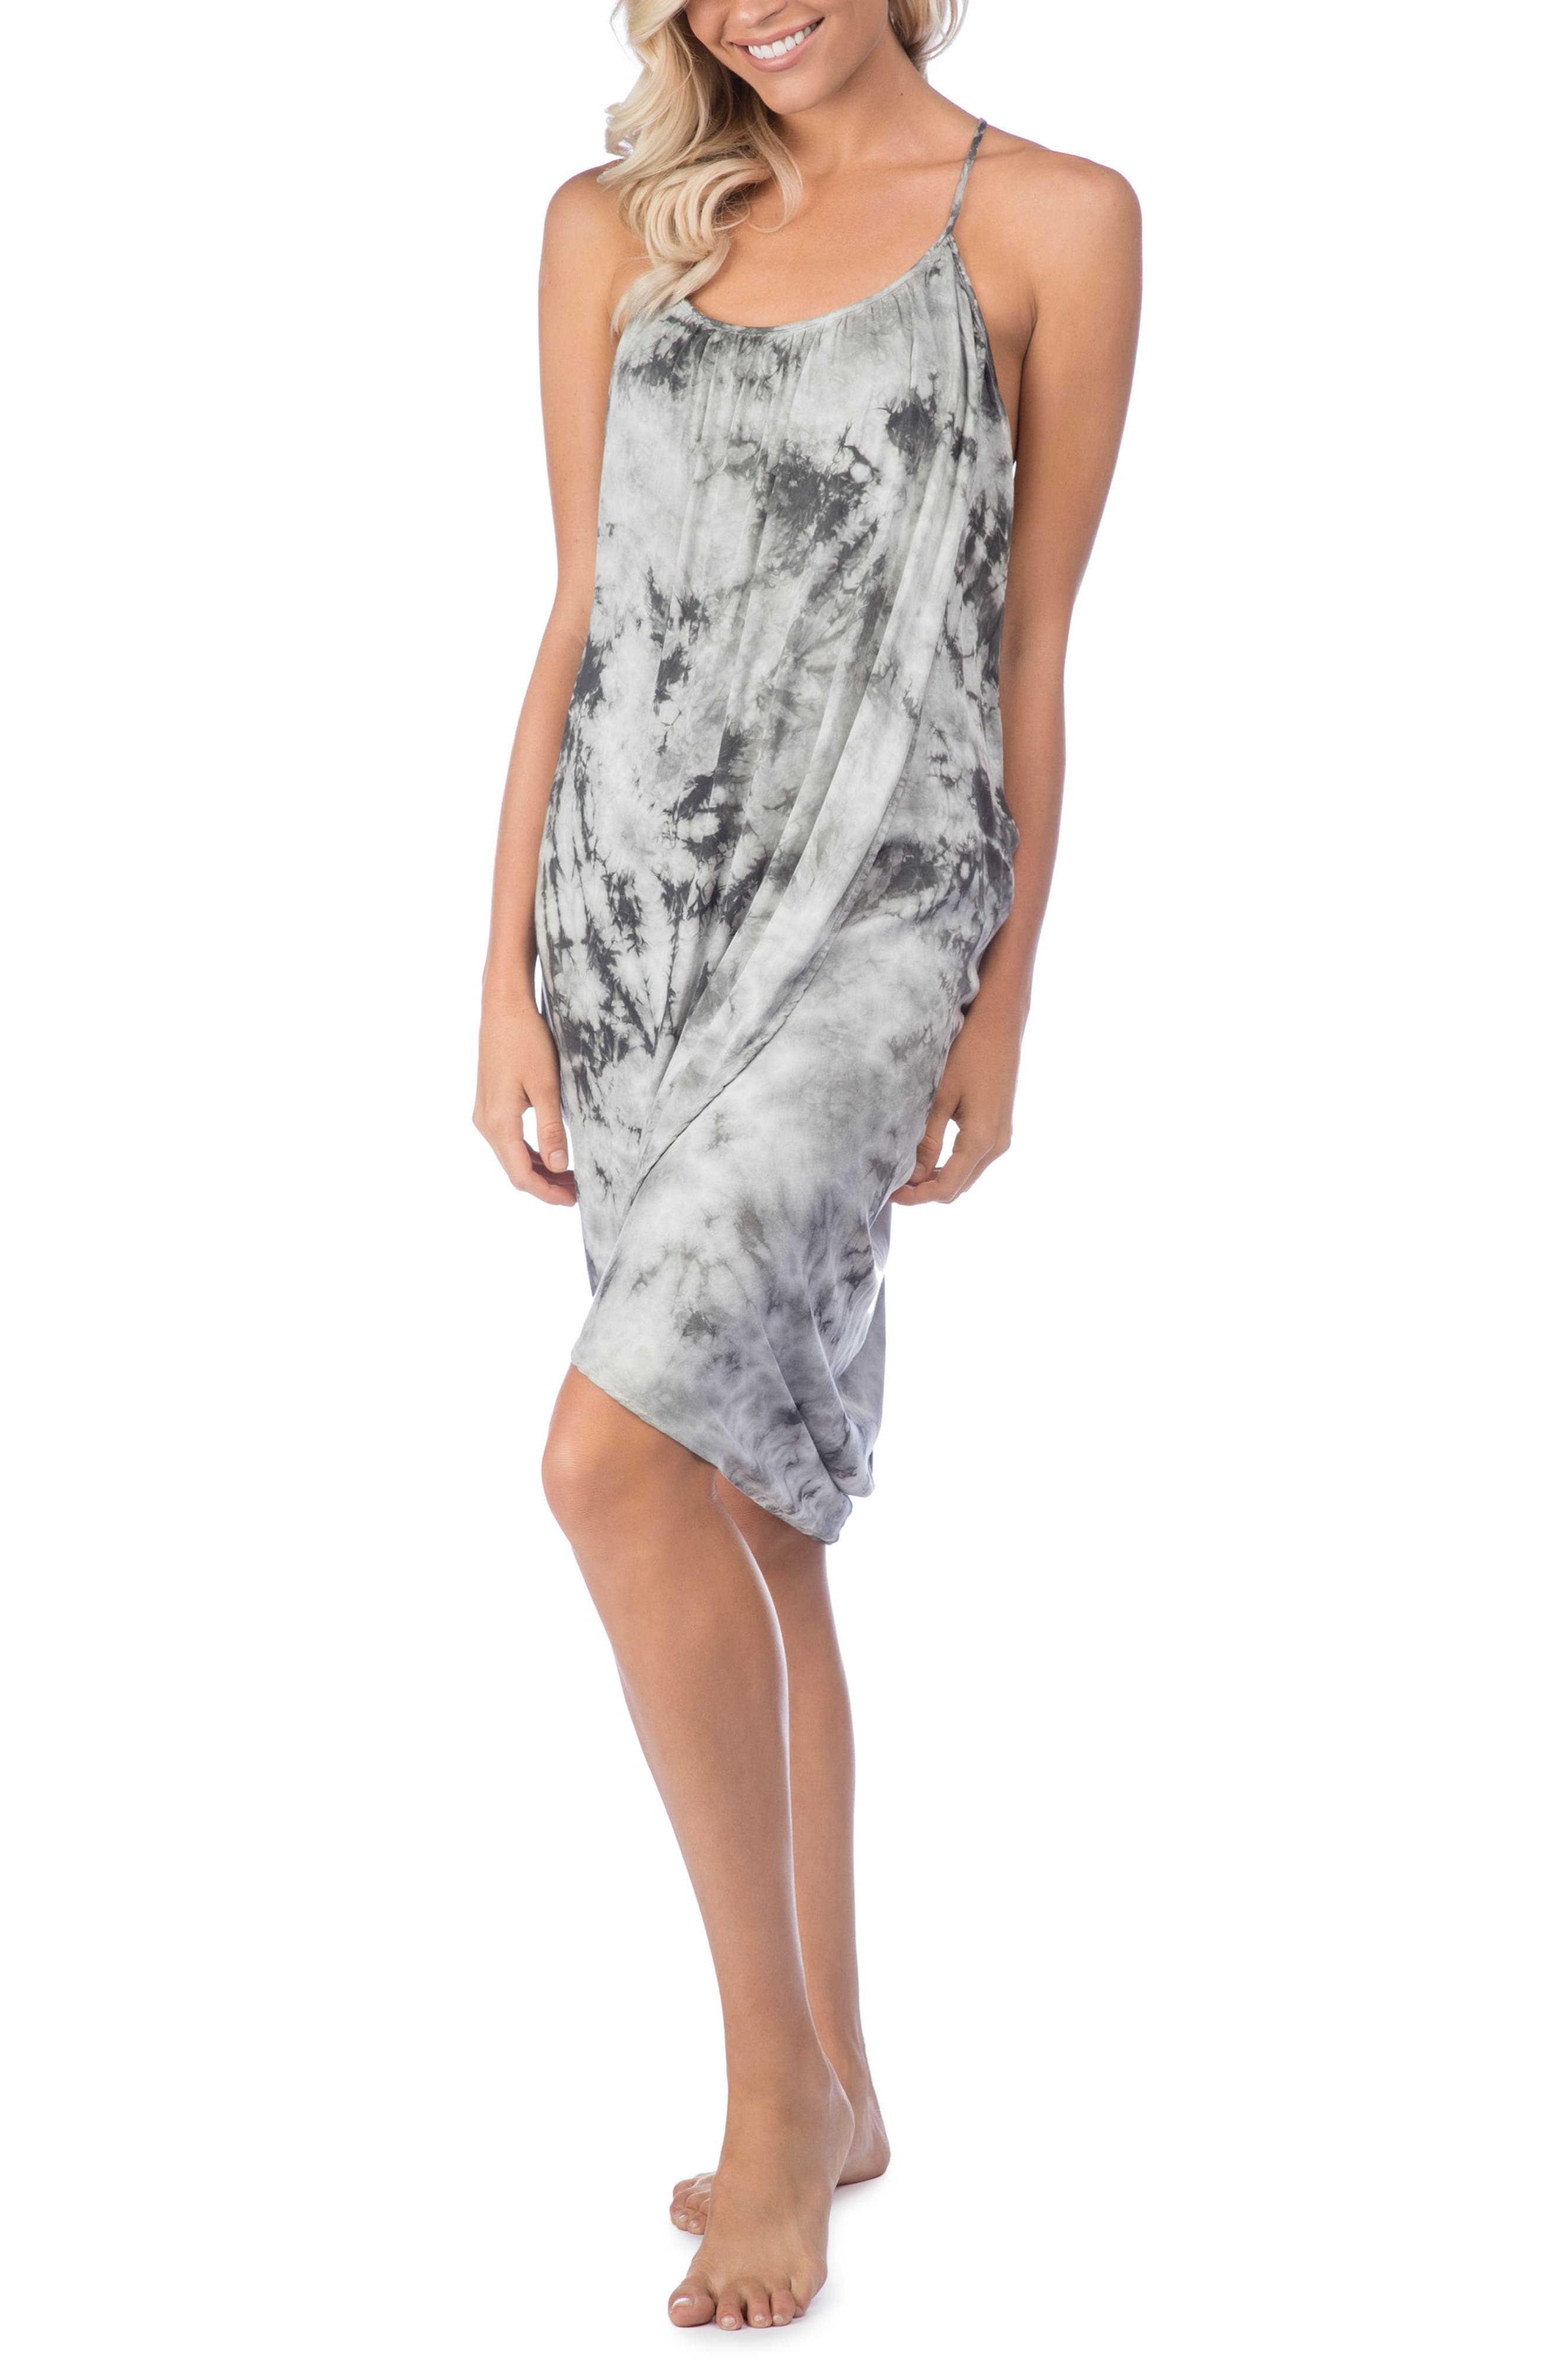 Crystal Forest Genvieve Cover-Up Dress,                             Main thumbnail 1, color,                             Charcoal